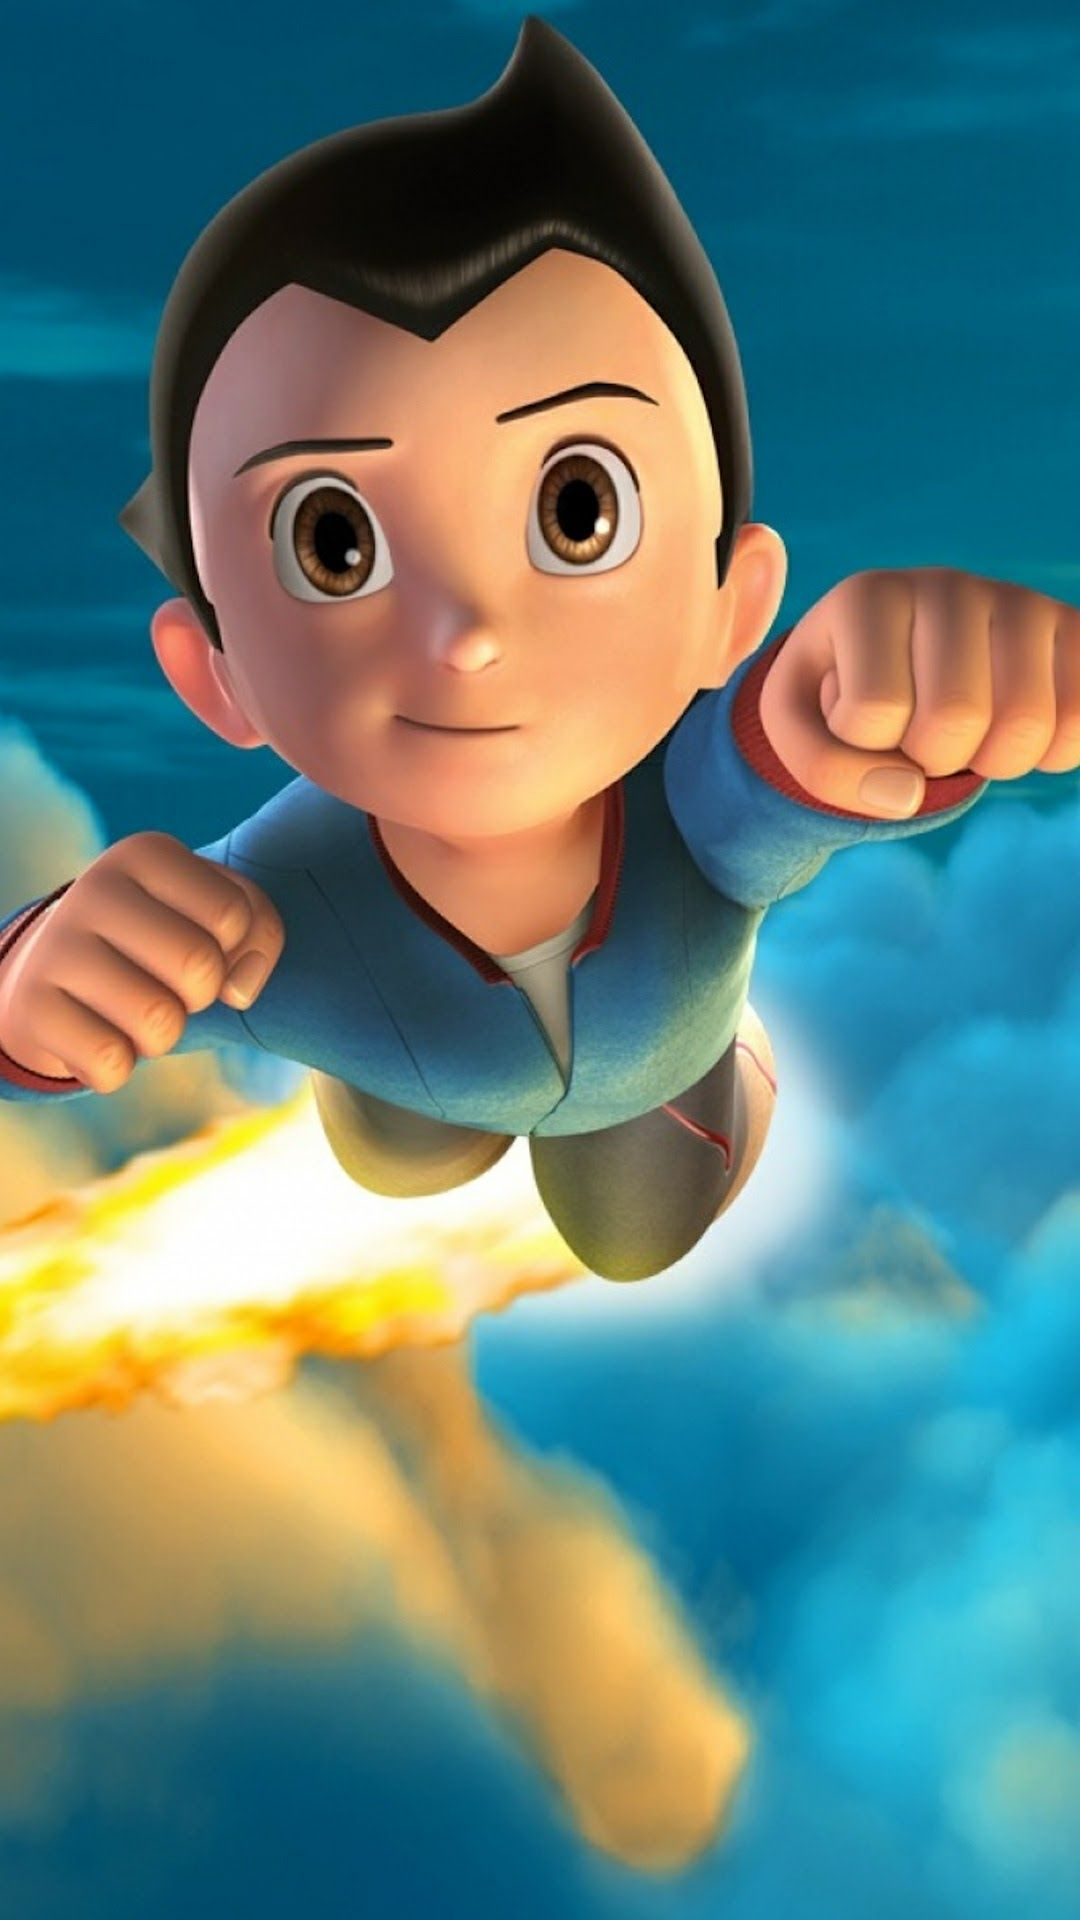 Pin by Aashitosh Gajbhiye on Wallpapers Astro boy, Good